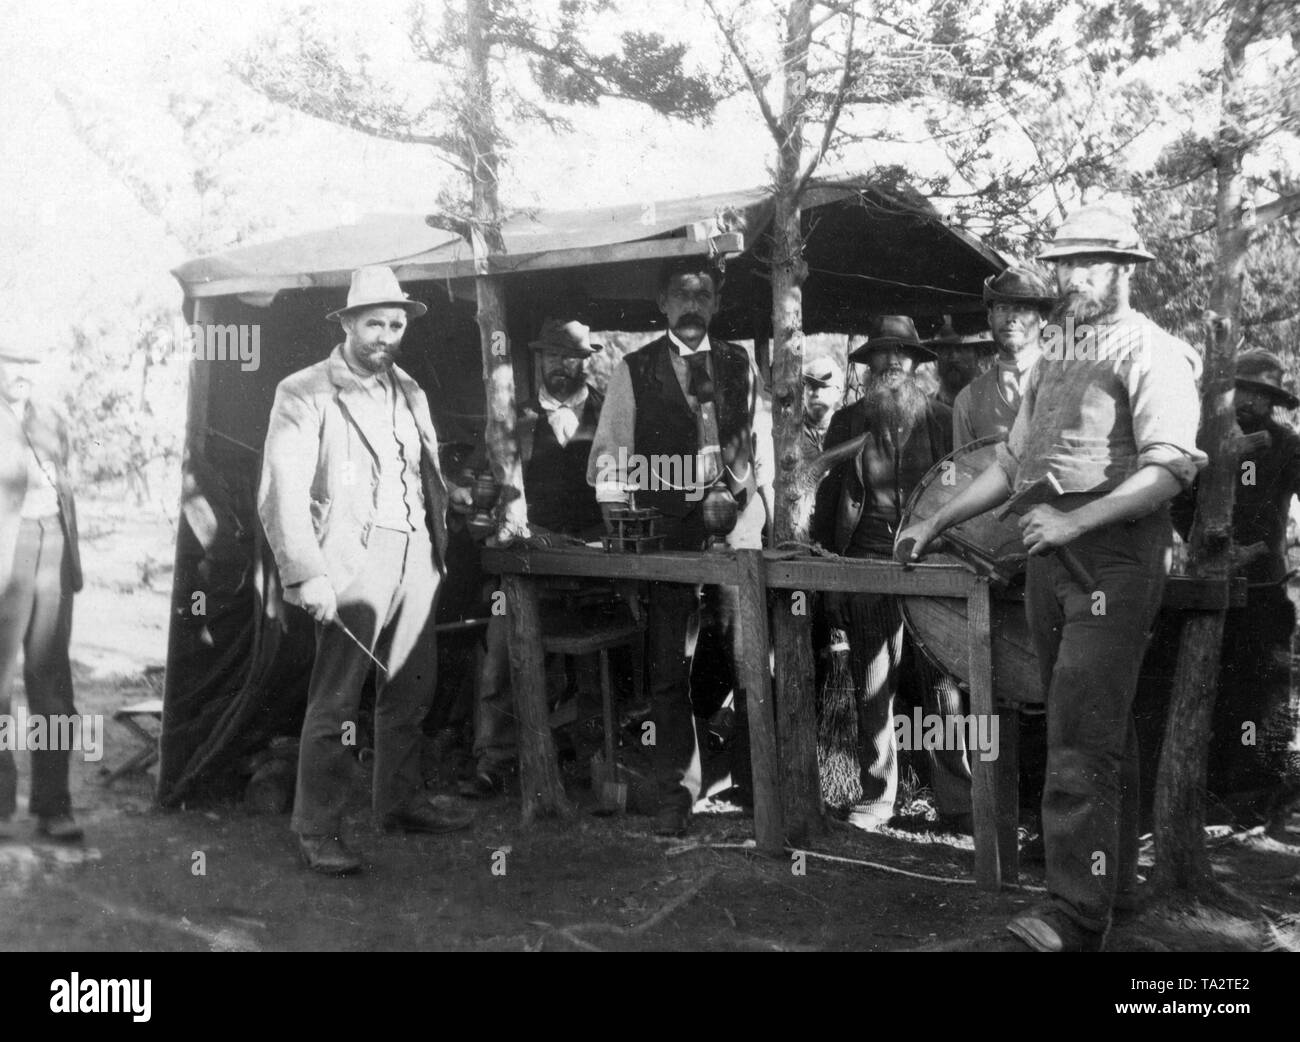 Captured Boers from South Africa, concentration camp 1899-1902: Boers in a prison camp on the Bermudas - Prisoners at work. - Stock Image